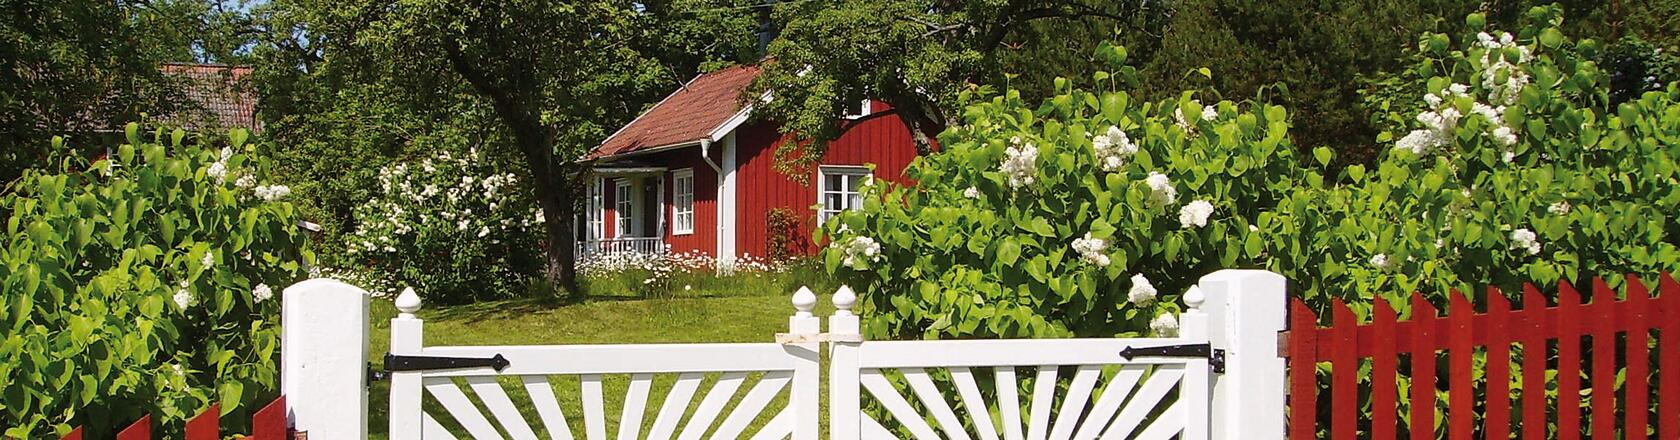 Nya Skaraborg in Sweden - Rent a holiday home  with DanCenter